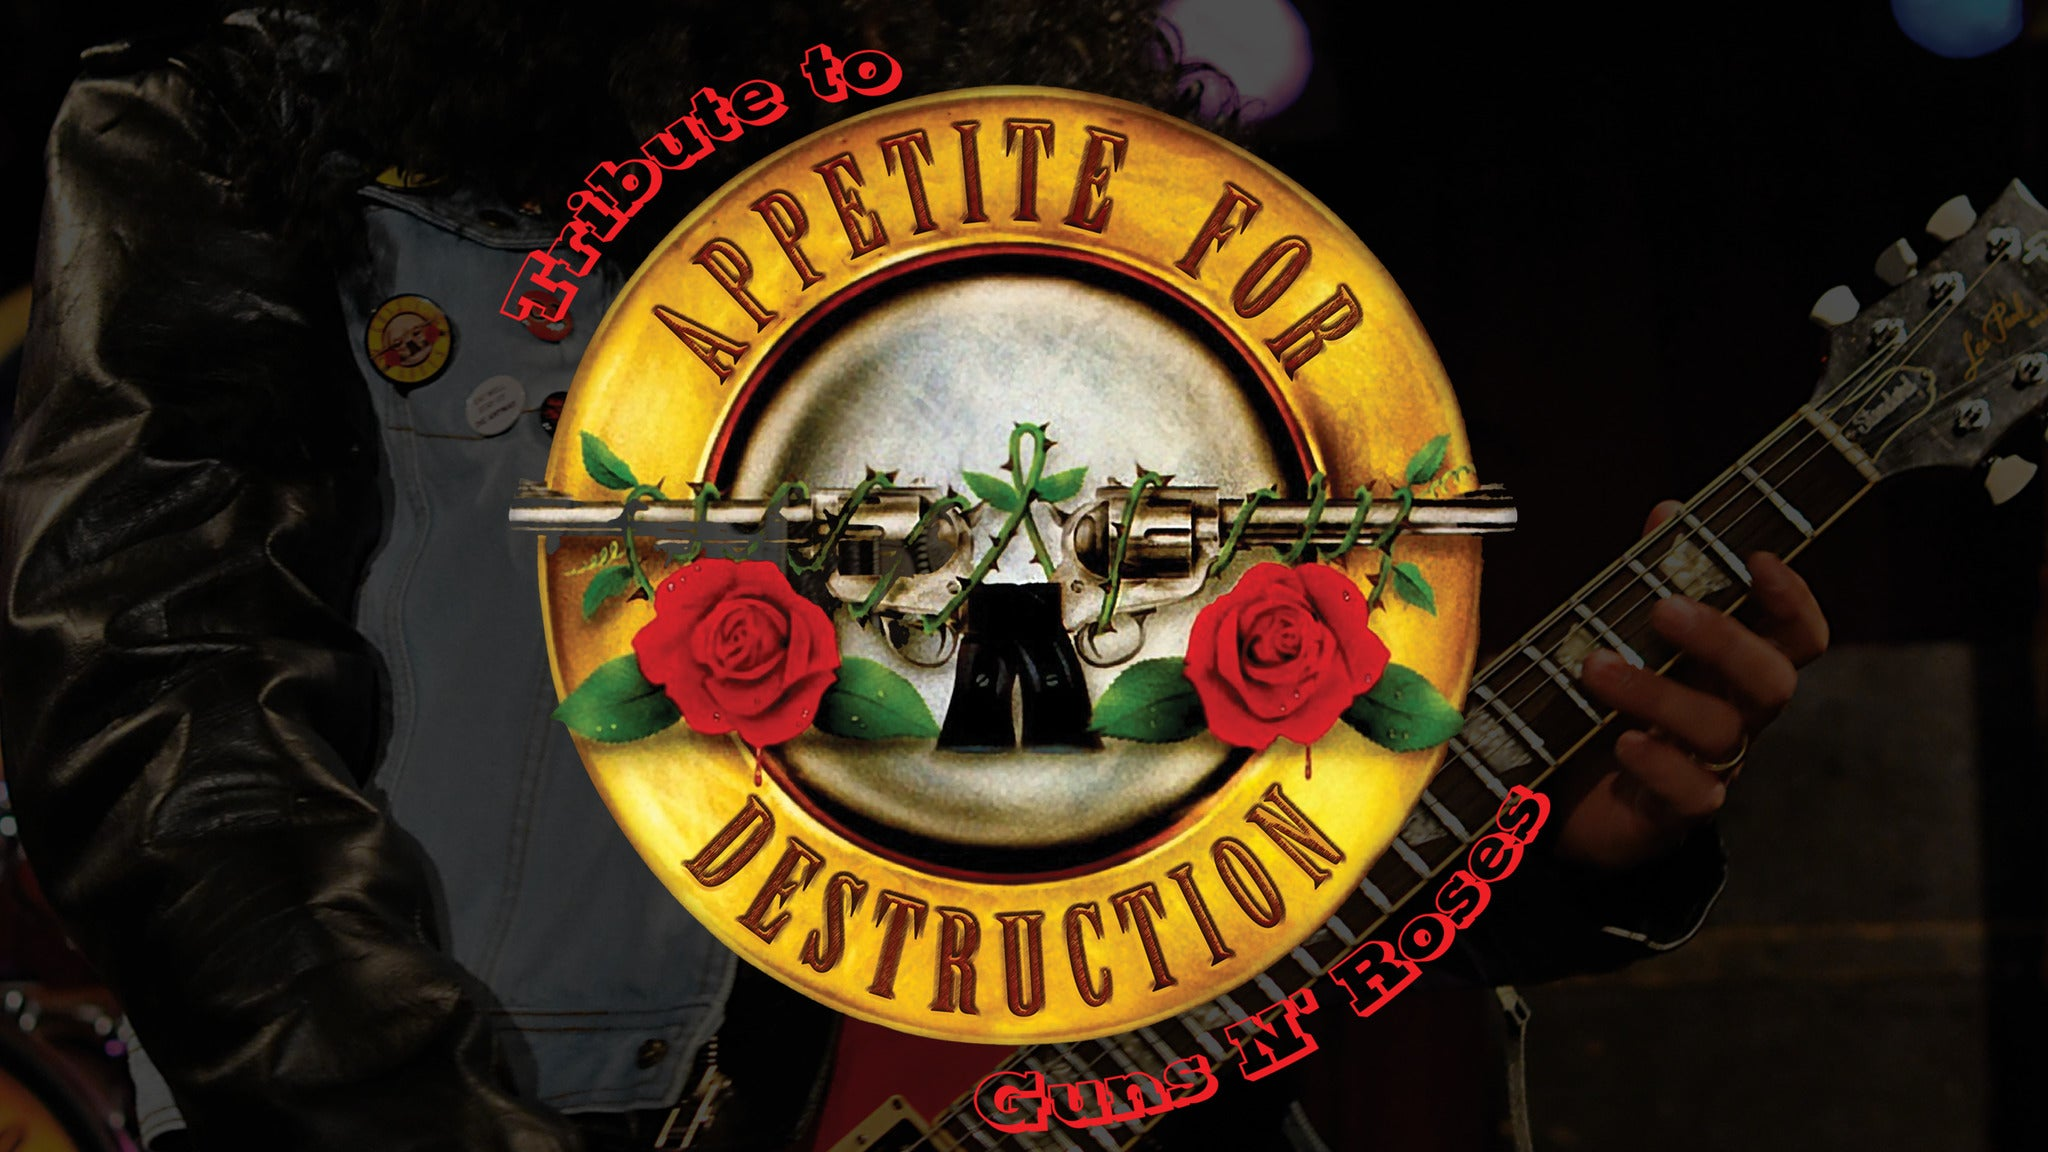 Appetite for Destruction at The Ritz